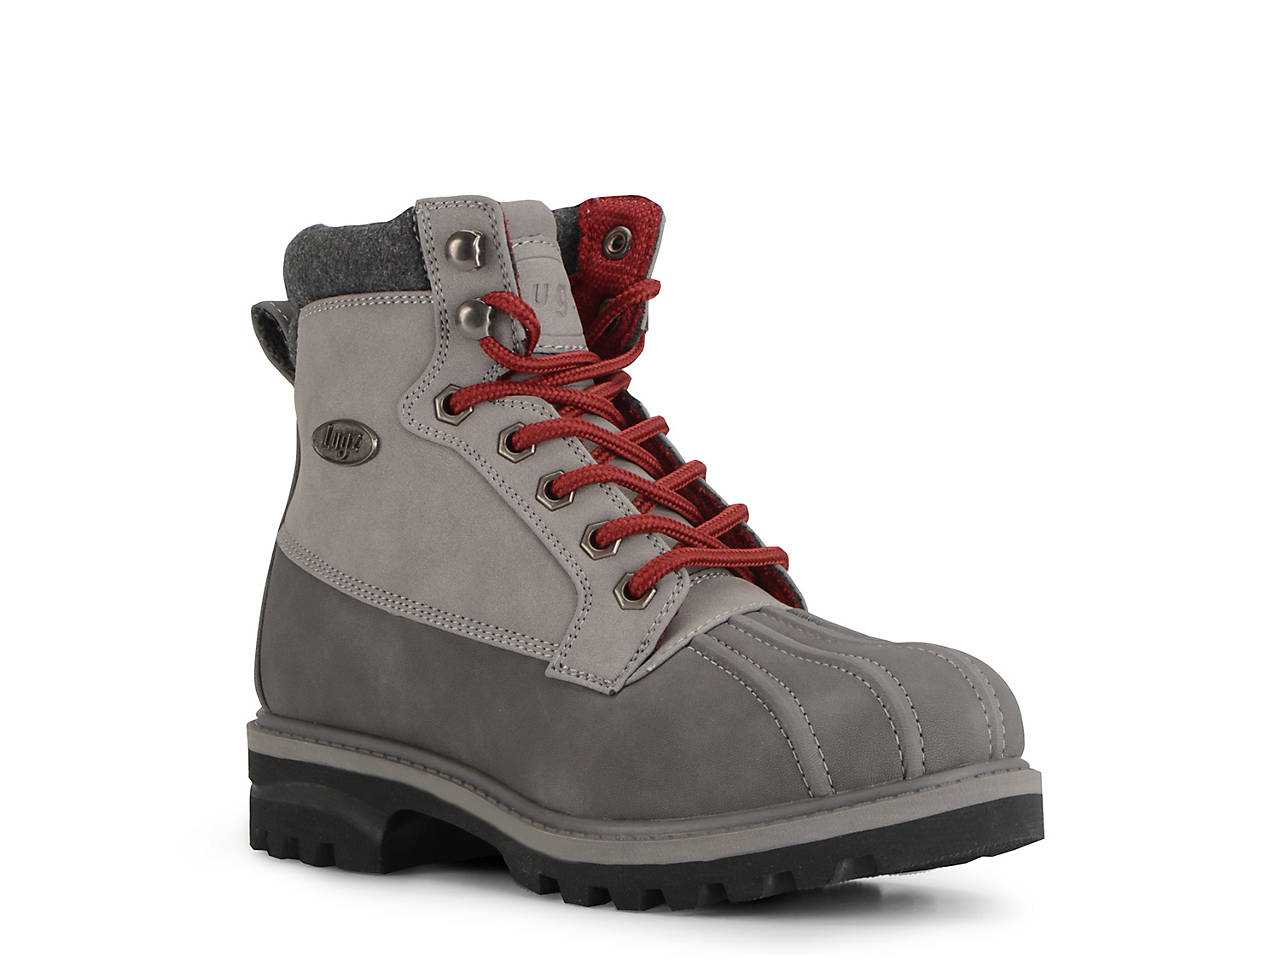 7cfa9712ce7c64 Lugz Mallard Hiking Boot Women s Shoes